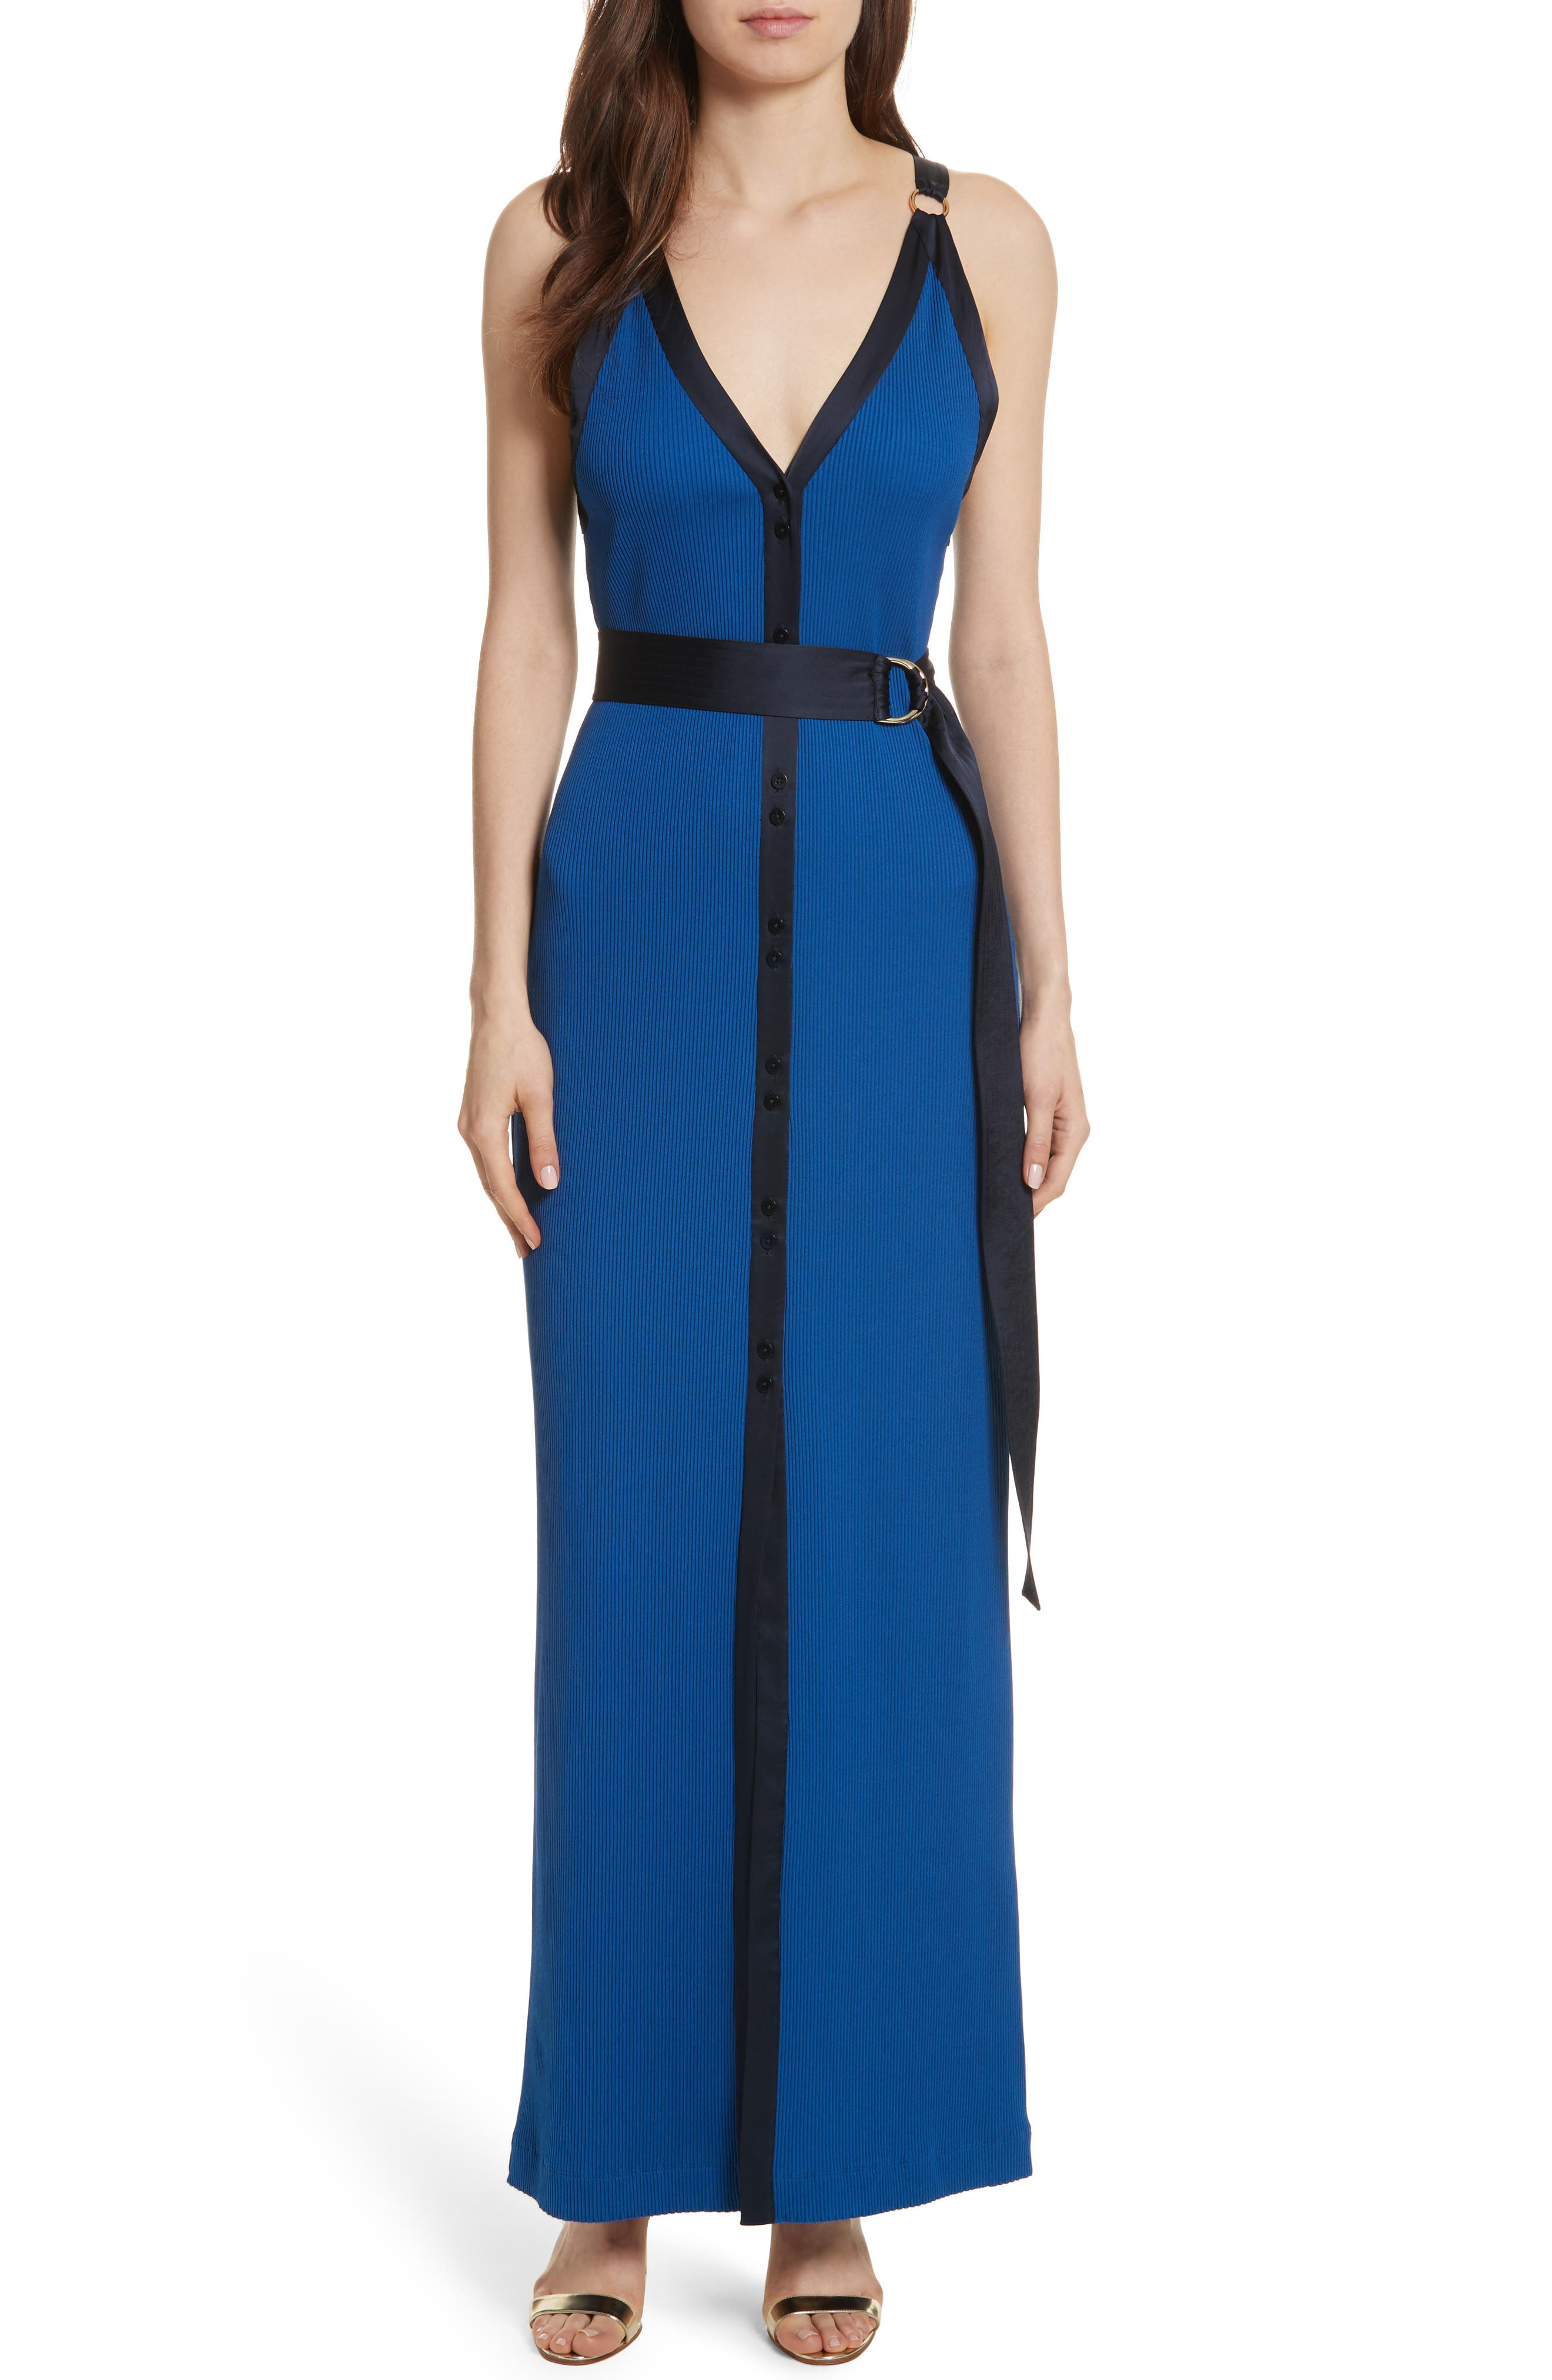 Diane von Furstenberg Ribbed Jersey Maxi Dress,                         Main,                         color, Cove/ Alexander Navy